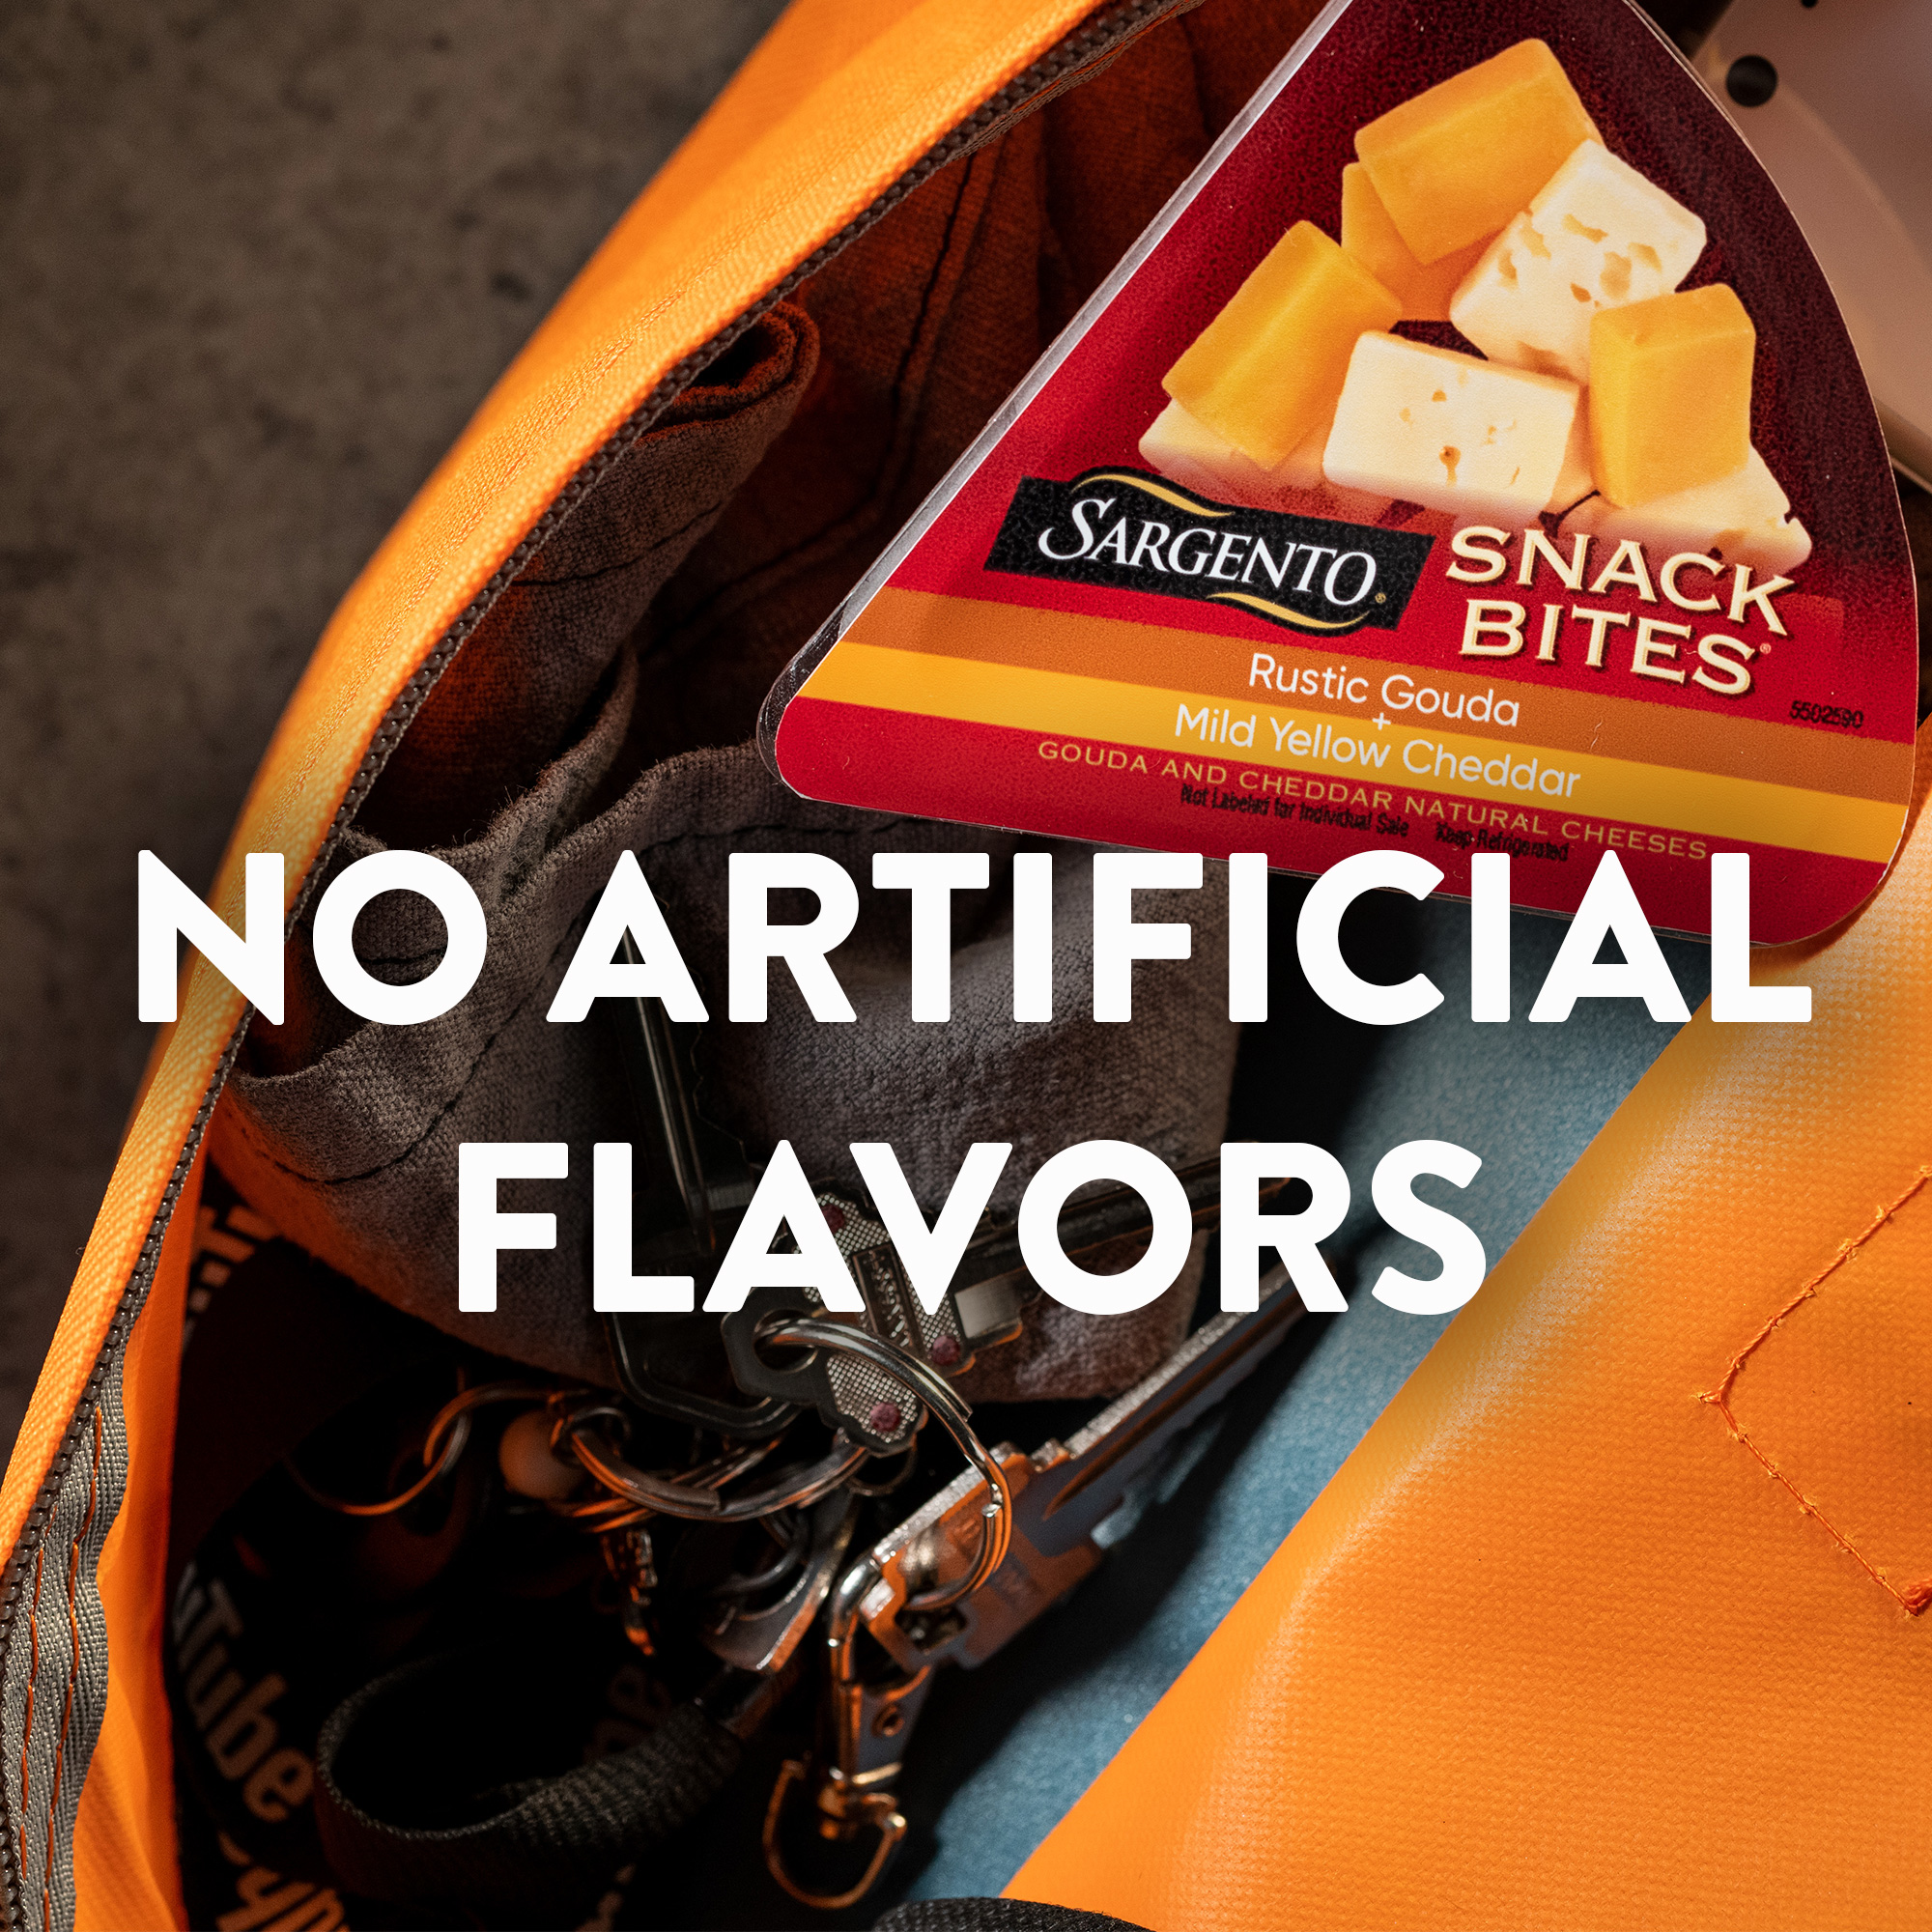 Sargento® Snack Bites® Rustic Gouda + Mild Yellow Cheddar Natural Cheeses